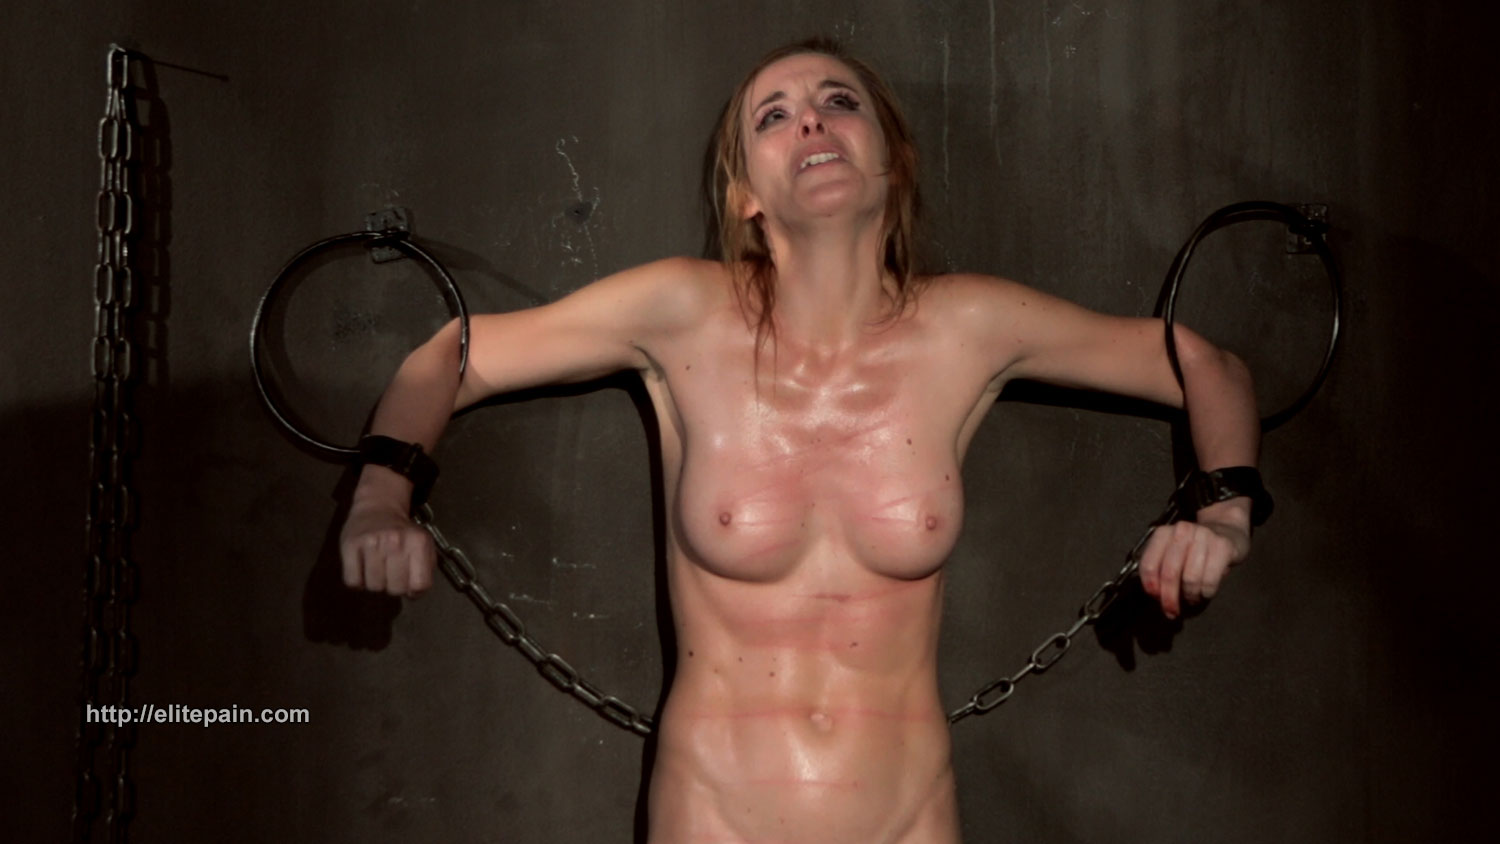 Bdsm kostenlose videos delicious Look